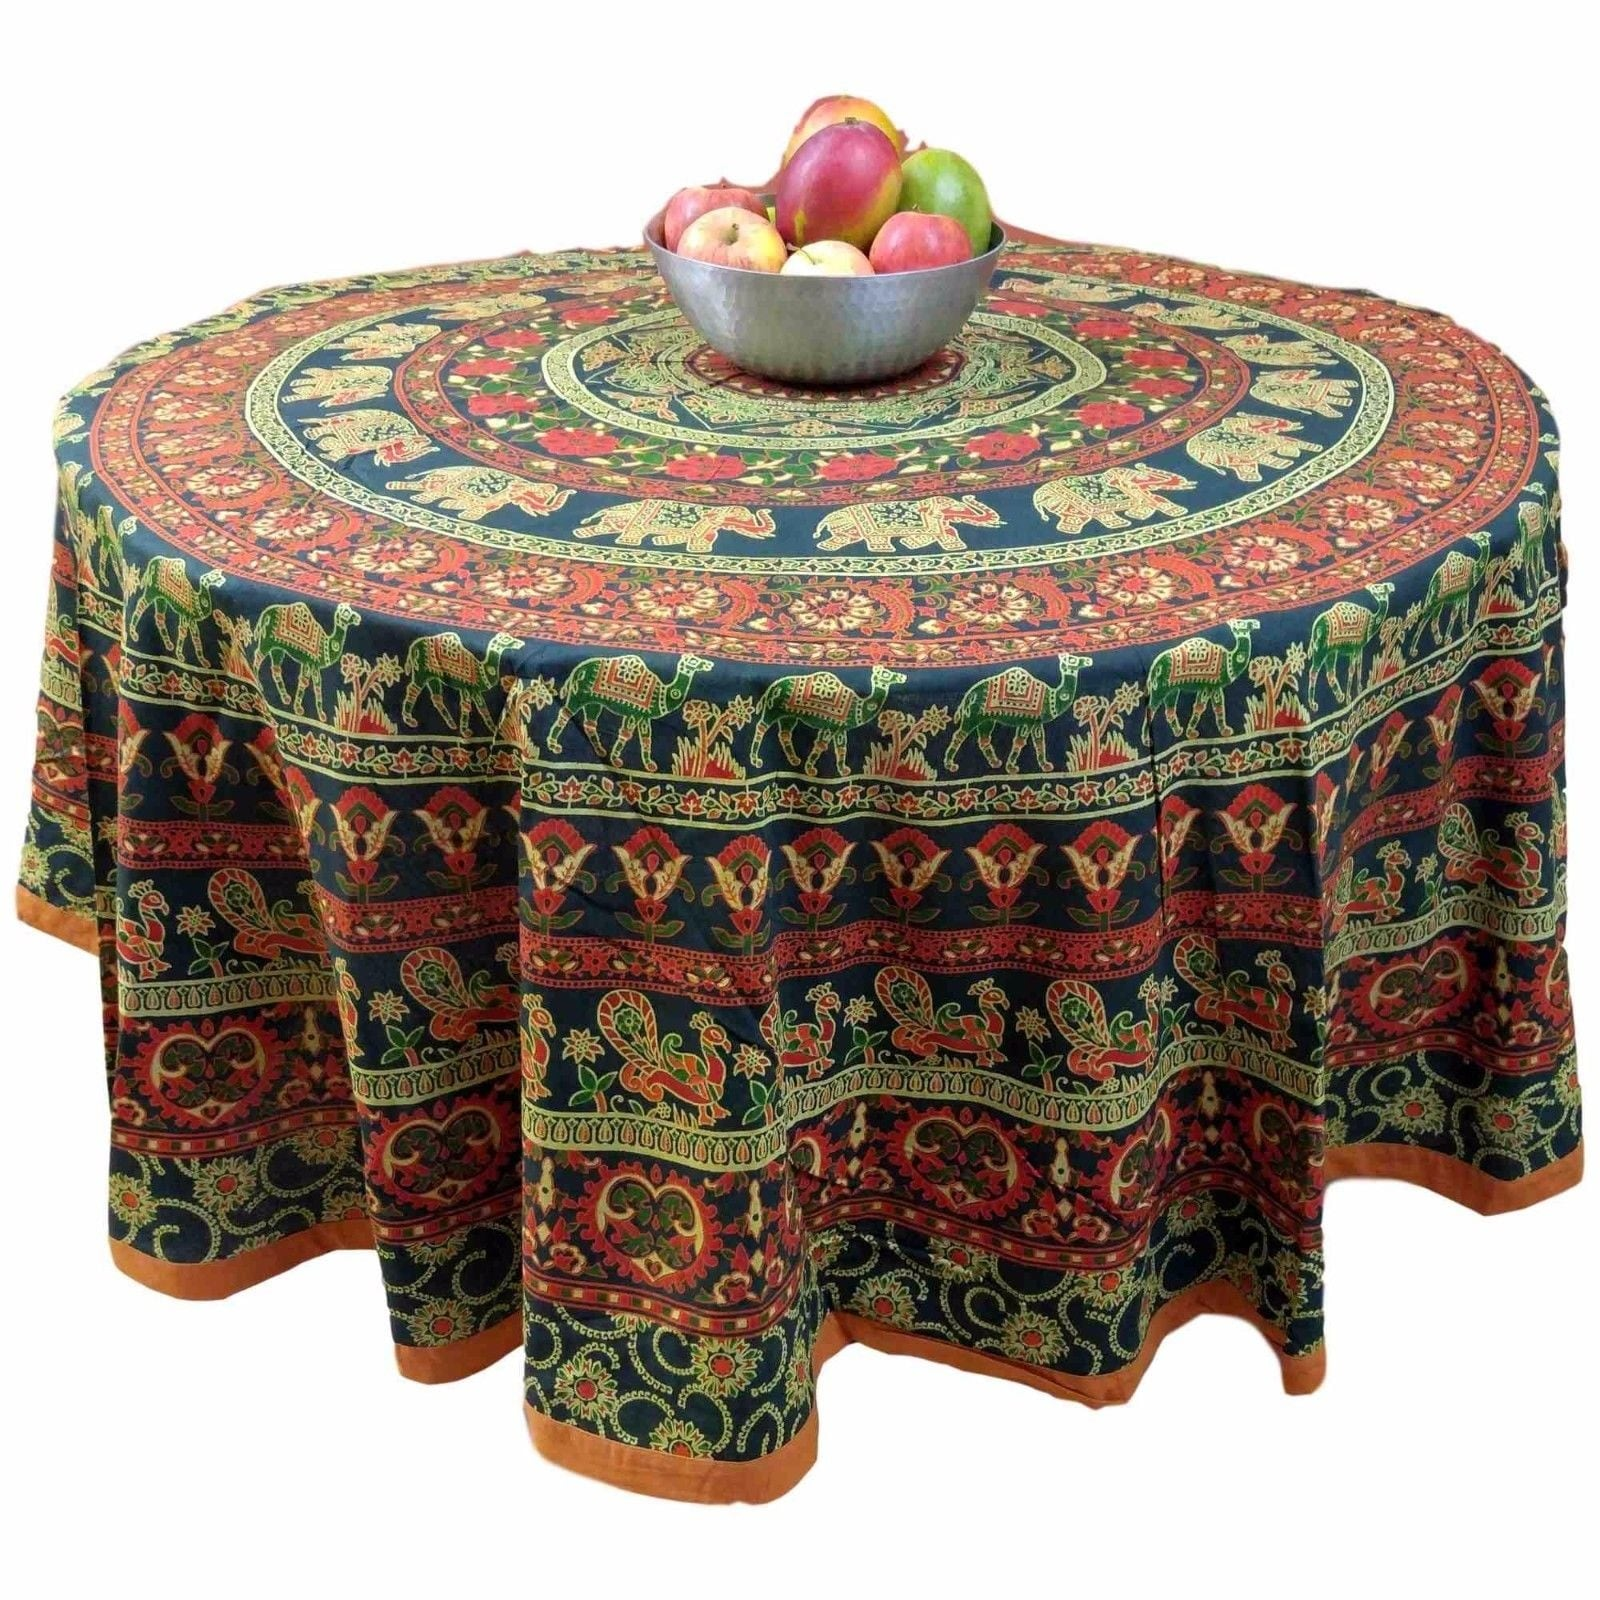 "Handmade 100% Cotton Elephant Mandala Floral Print 81"" Round Tablecloth Green Amber - Thumbnail 0"